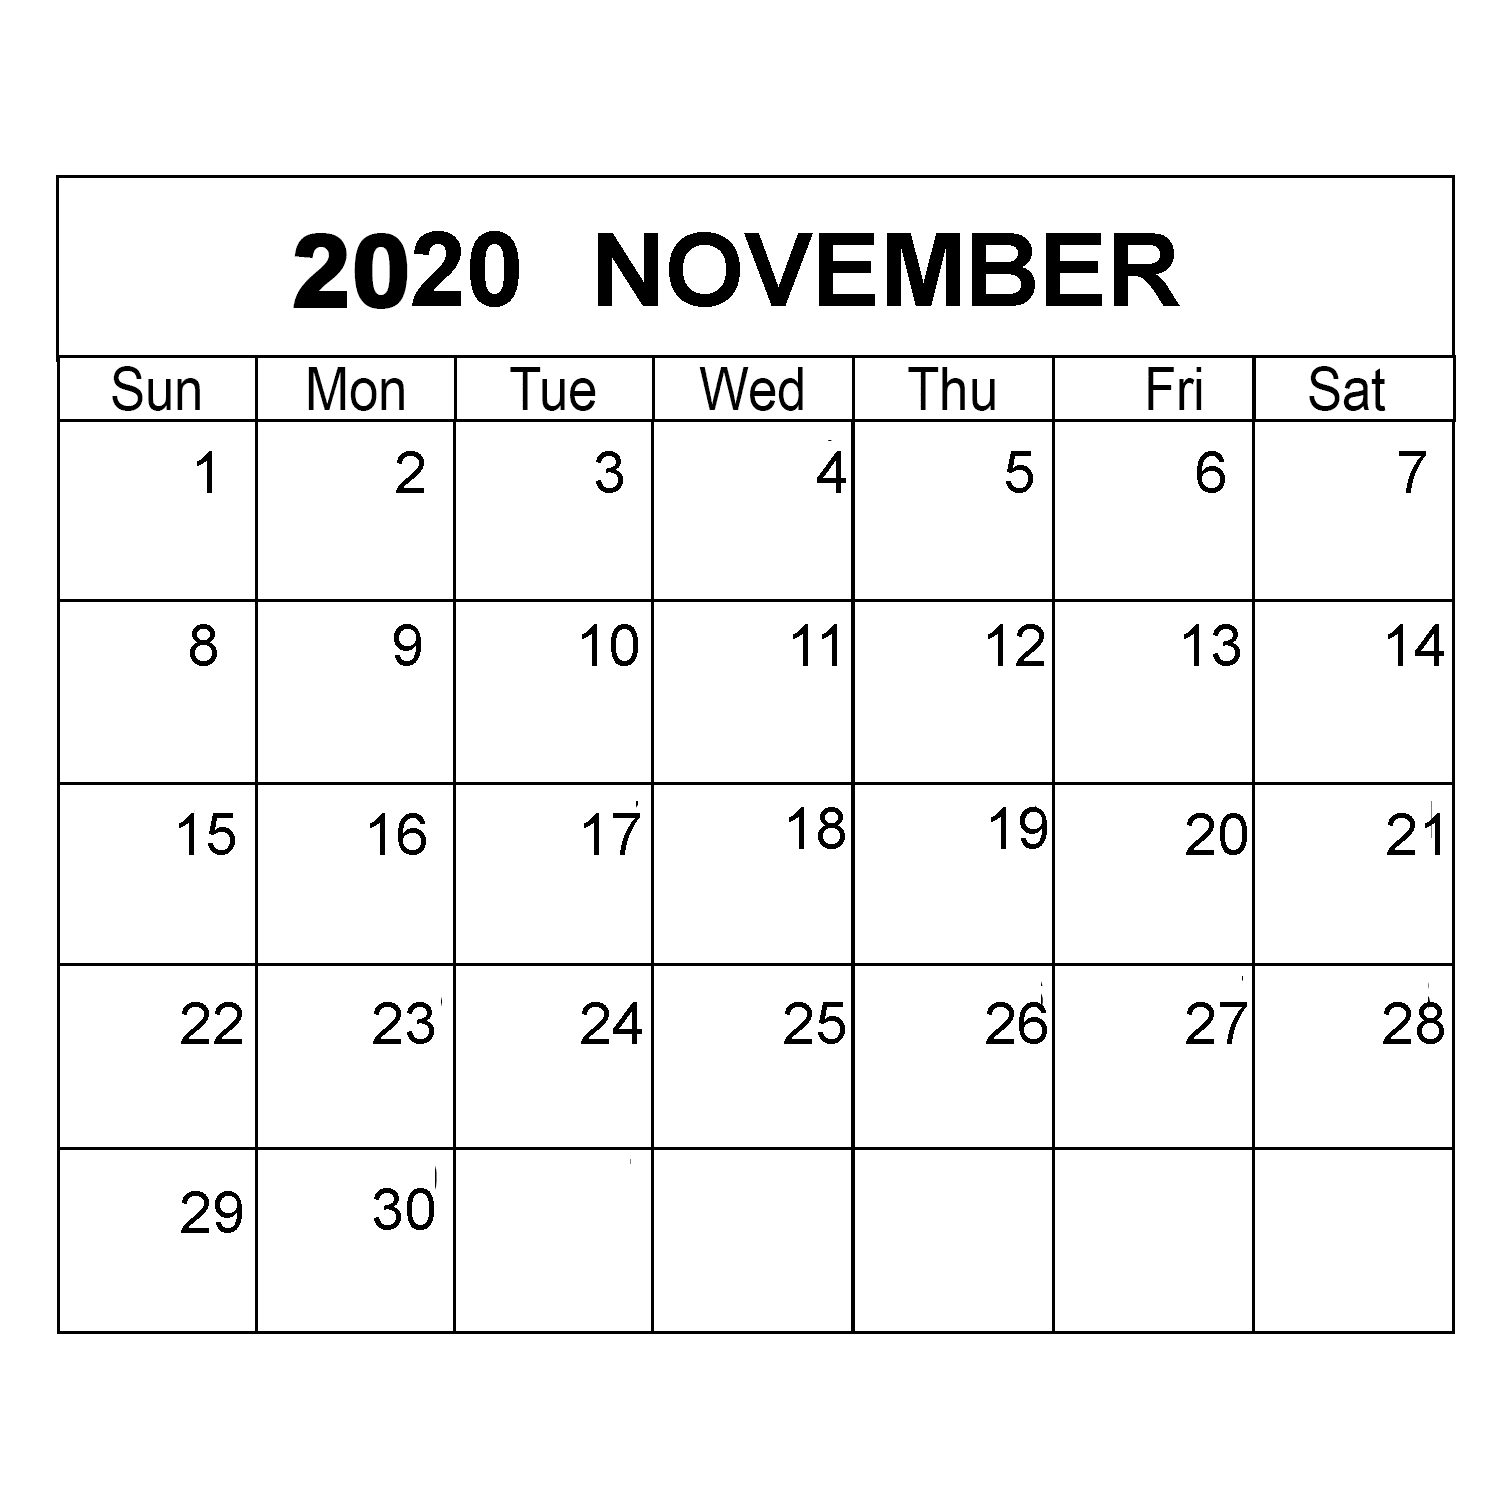 November 2020 Calendar Printable Monthly Template With Notes within Bring Up Calander For October And November 2020